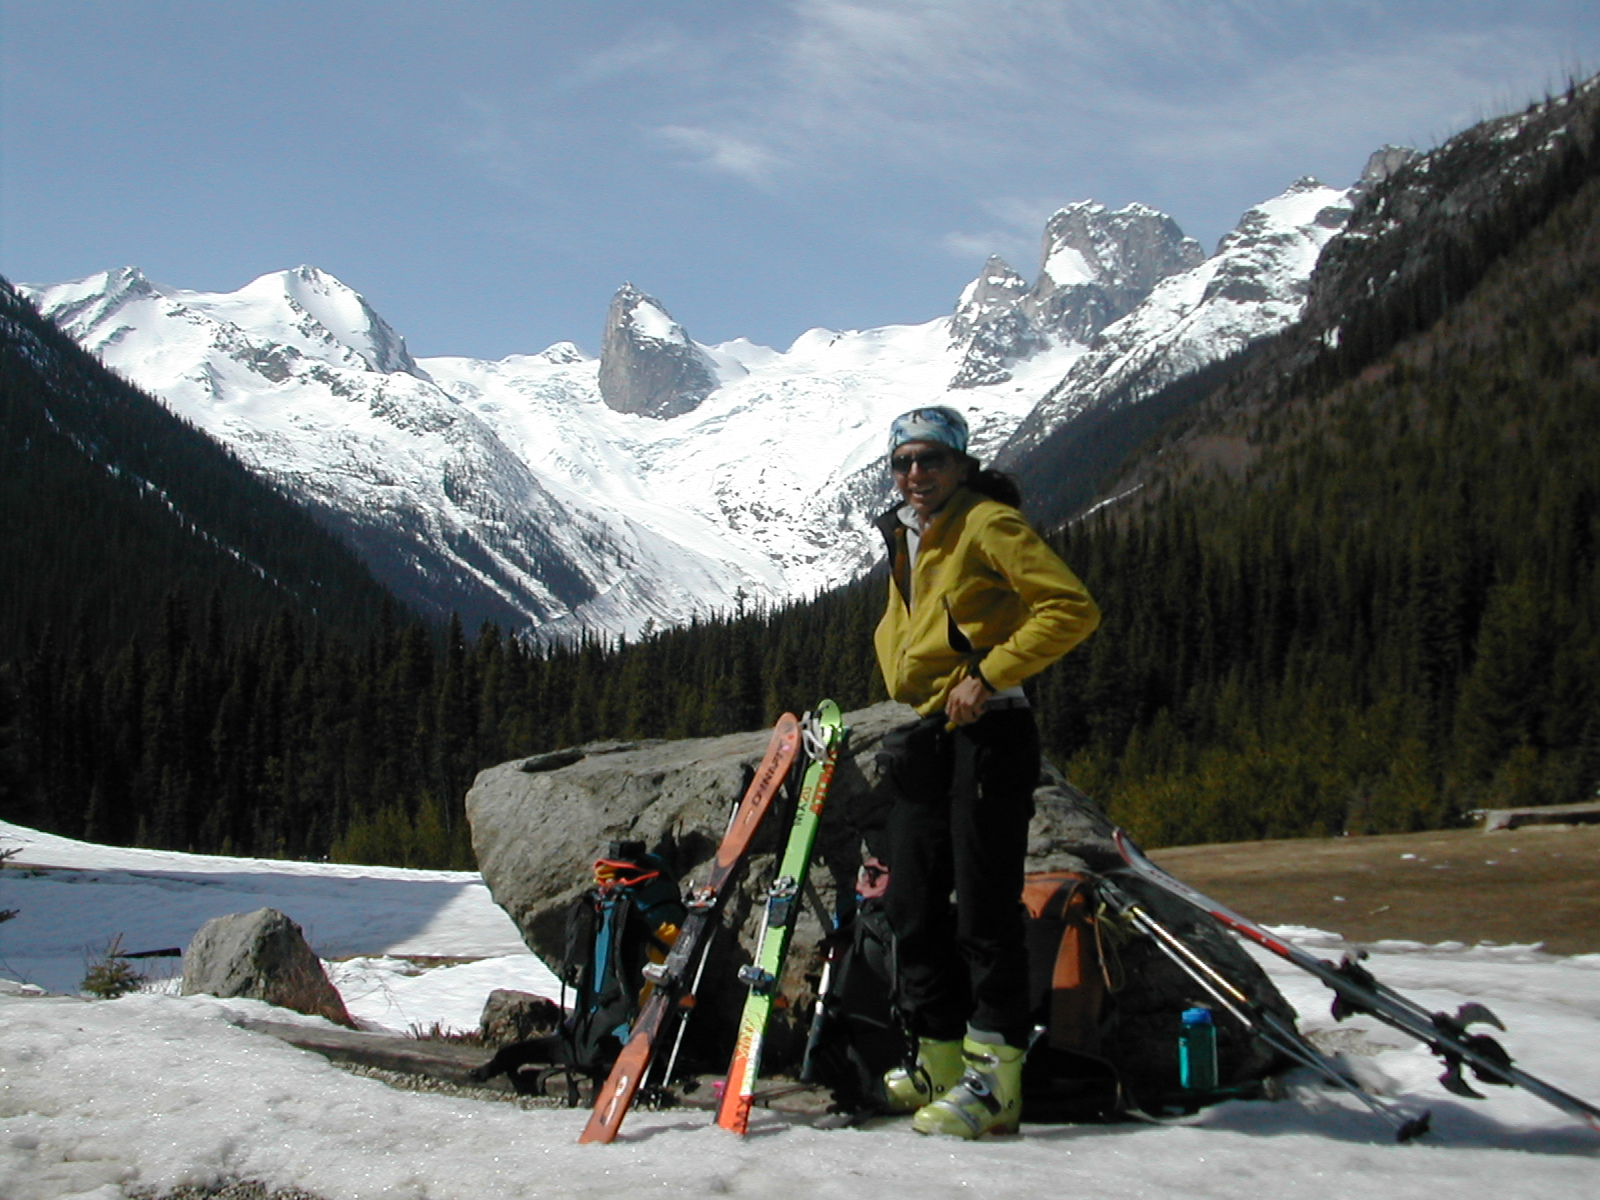 The End of the tour at Bugaboo lodge